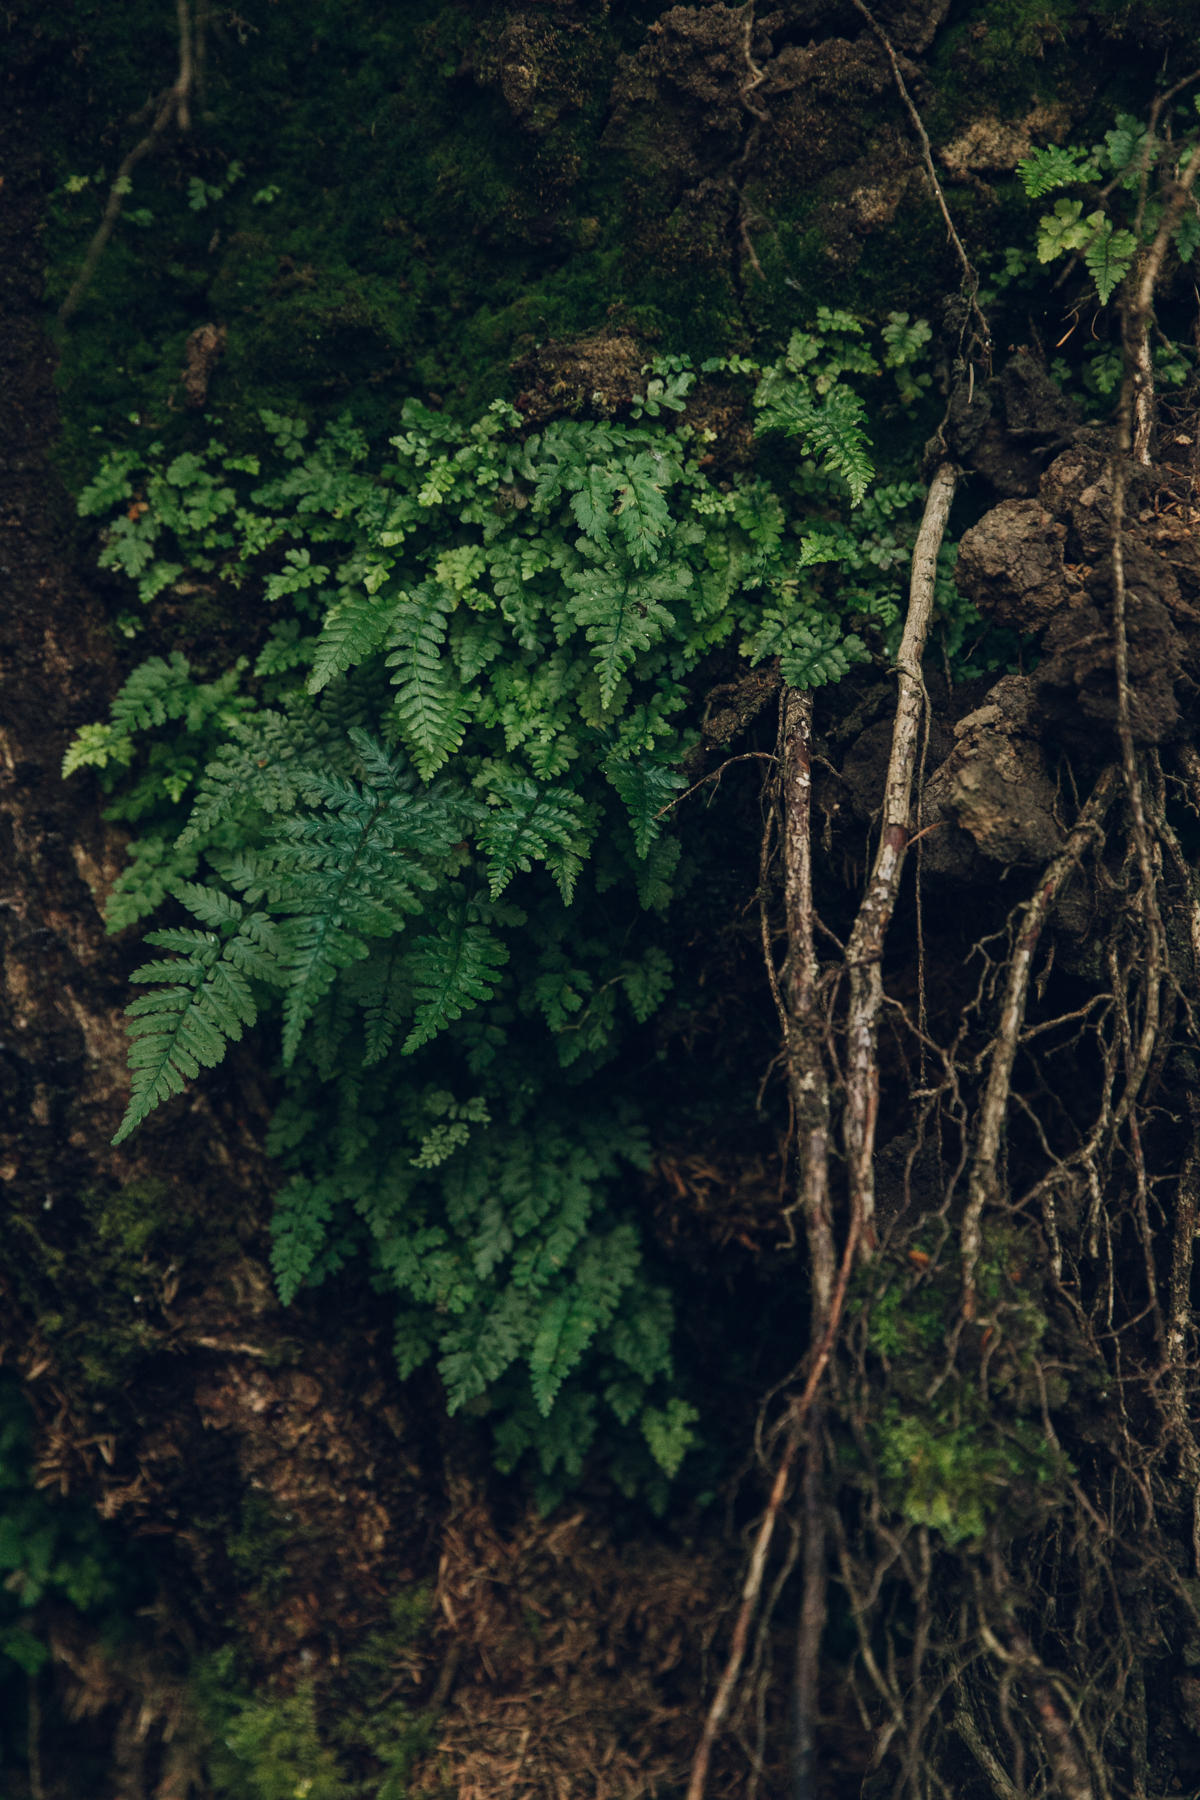 Ferns and bracken planted in the tree roots.